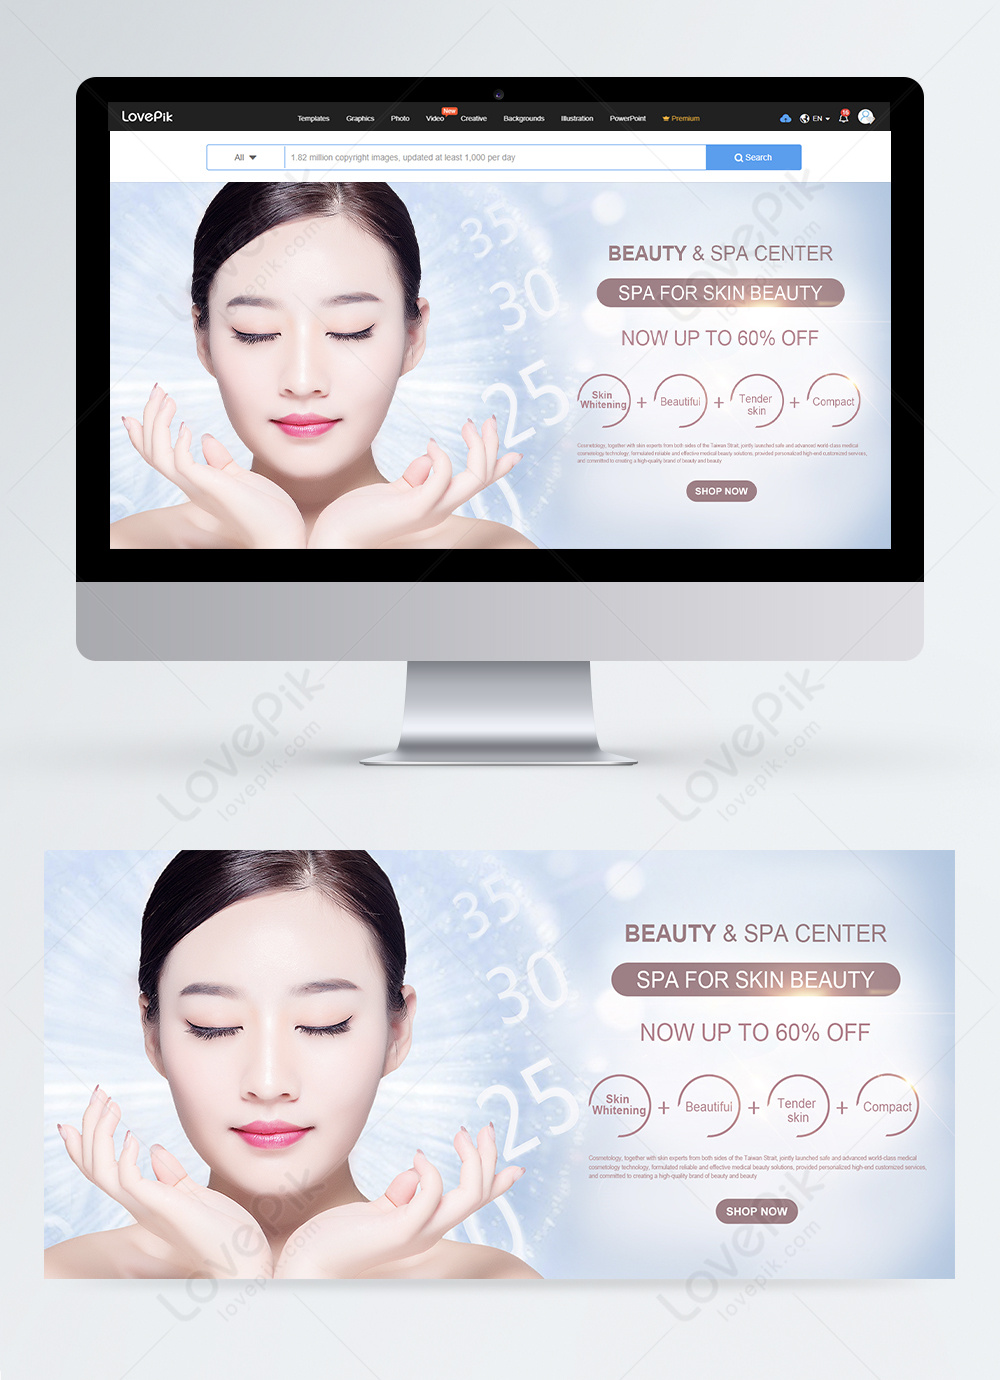 High Quality Beauty Skincare Web Banner Template Image Picture Free Download 450016993 Lovepik Com